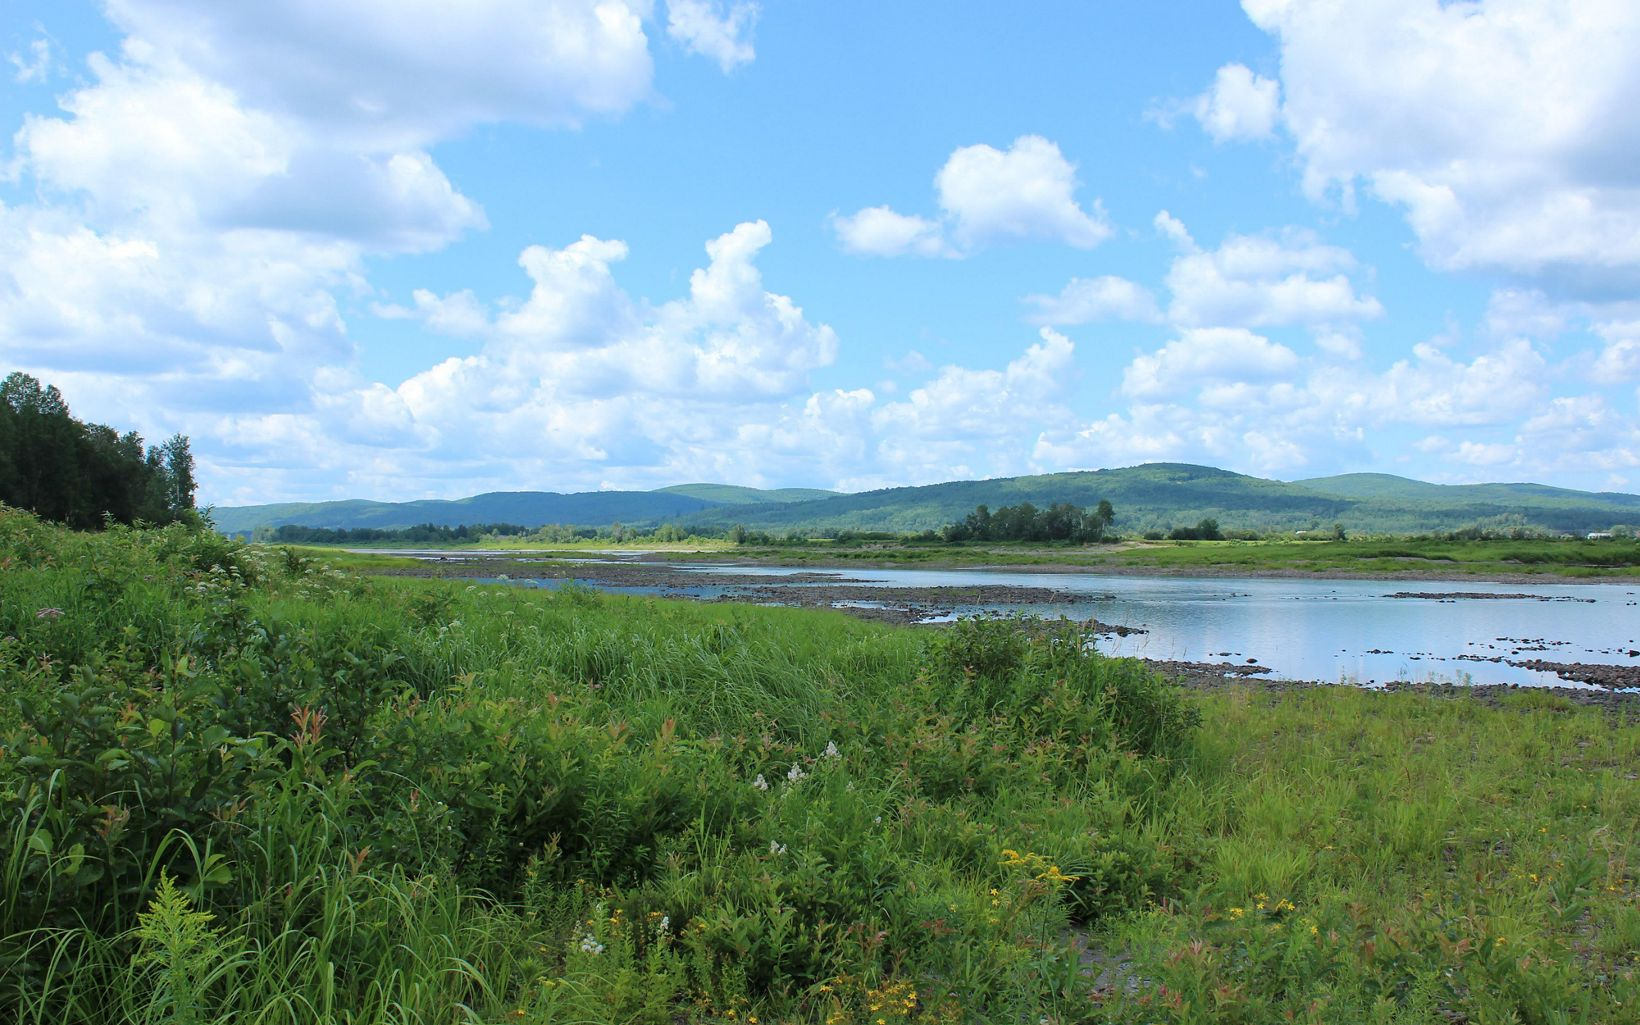 The St. John River with low water levels and green summer growth on the banks.